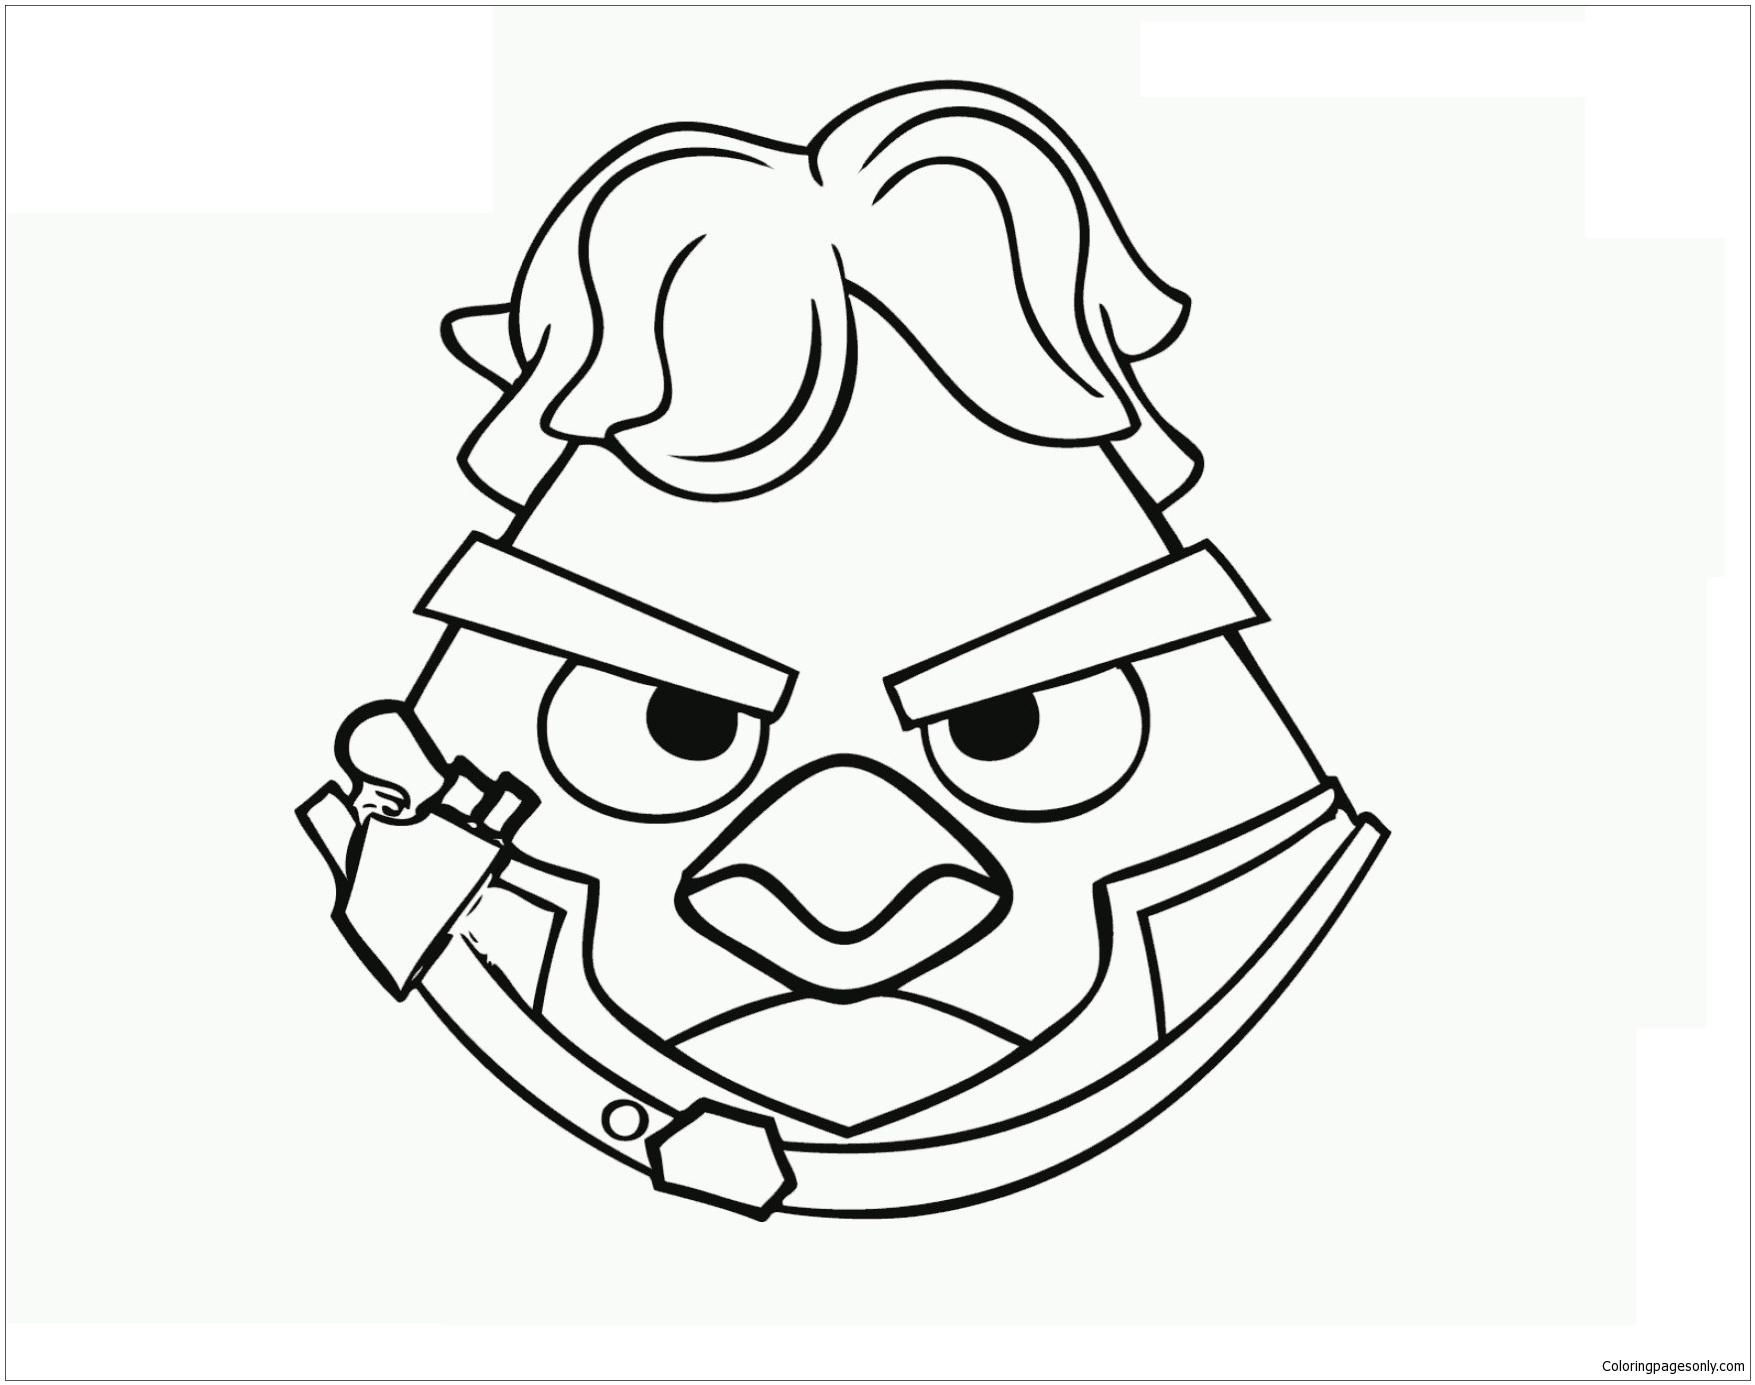 Coloring Pages Angry Birds. Print online for kids, best images | 1385x1755